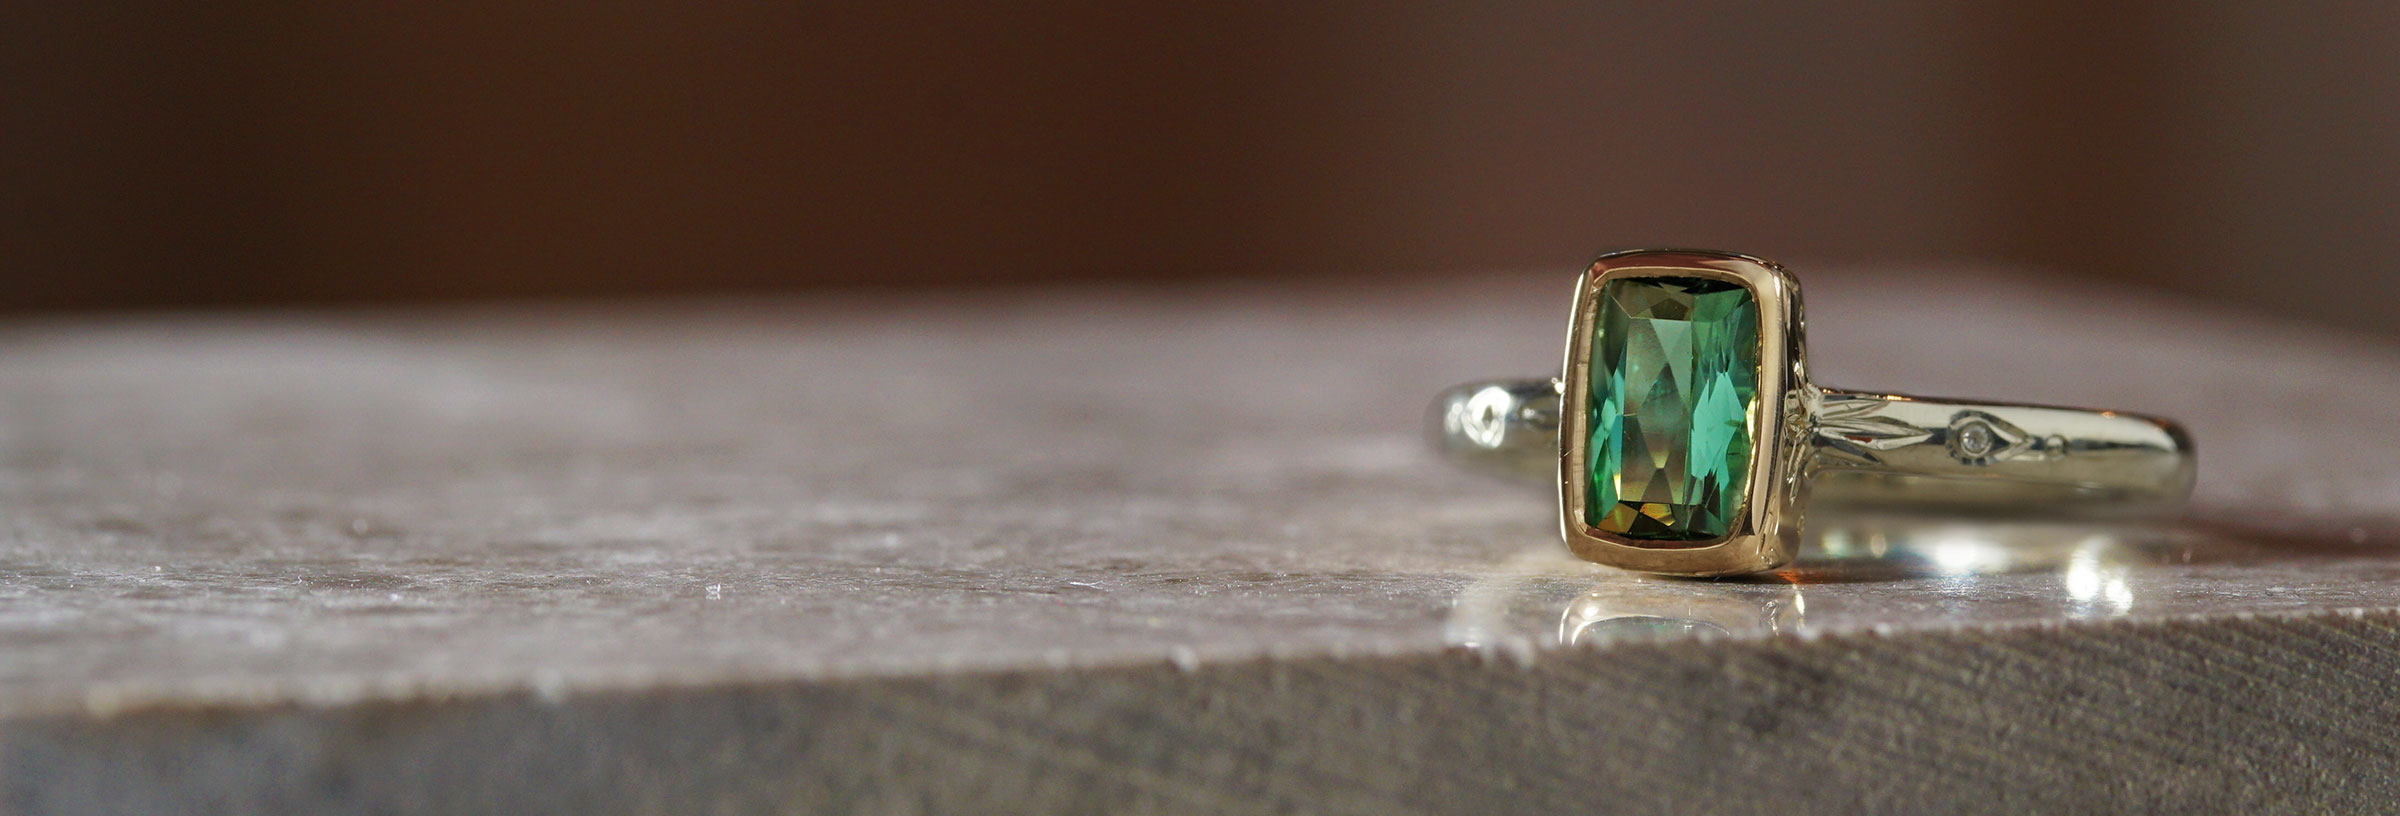 fairtrade-white-and-yellow-gold-mint-tourmaline-engraved-engagement-ring